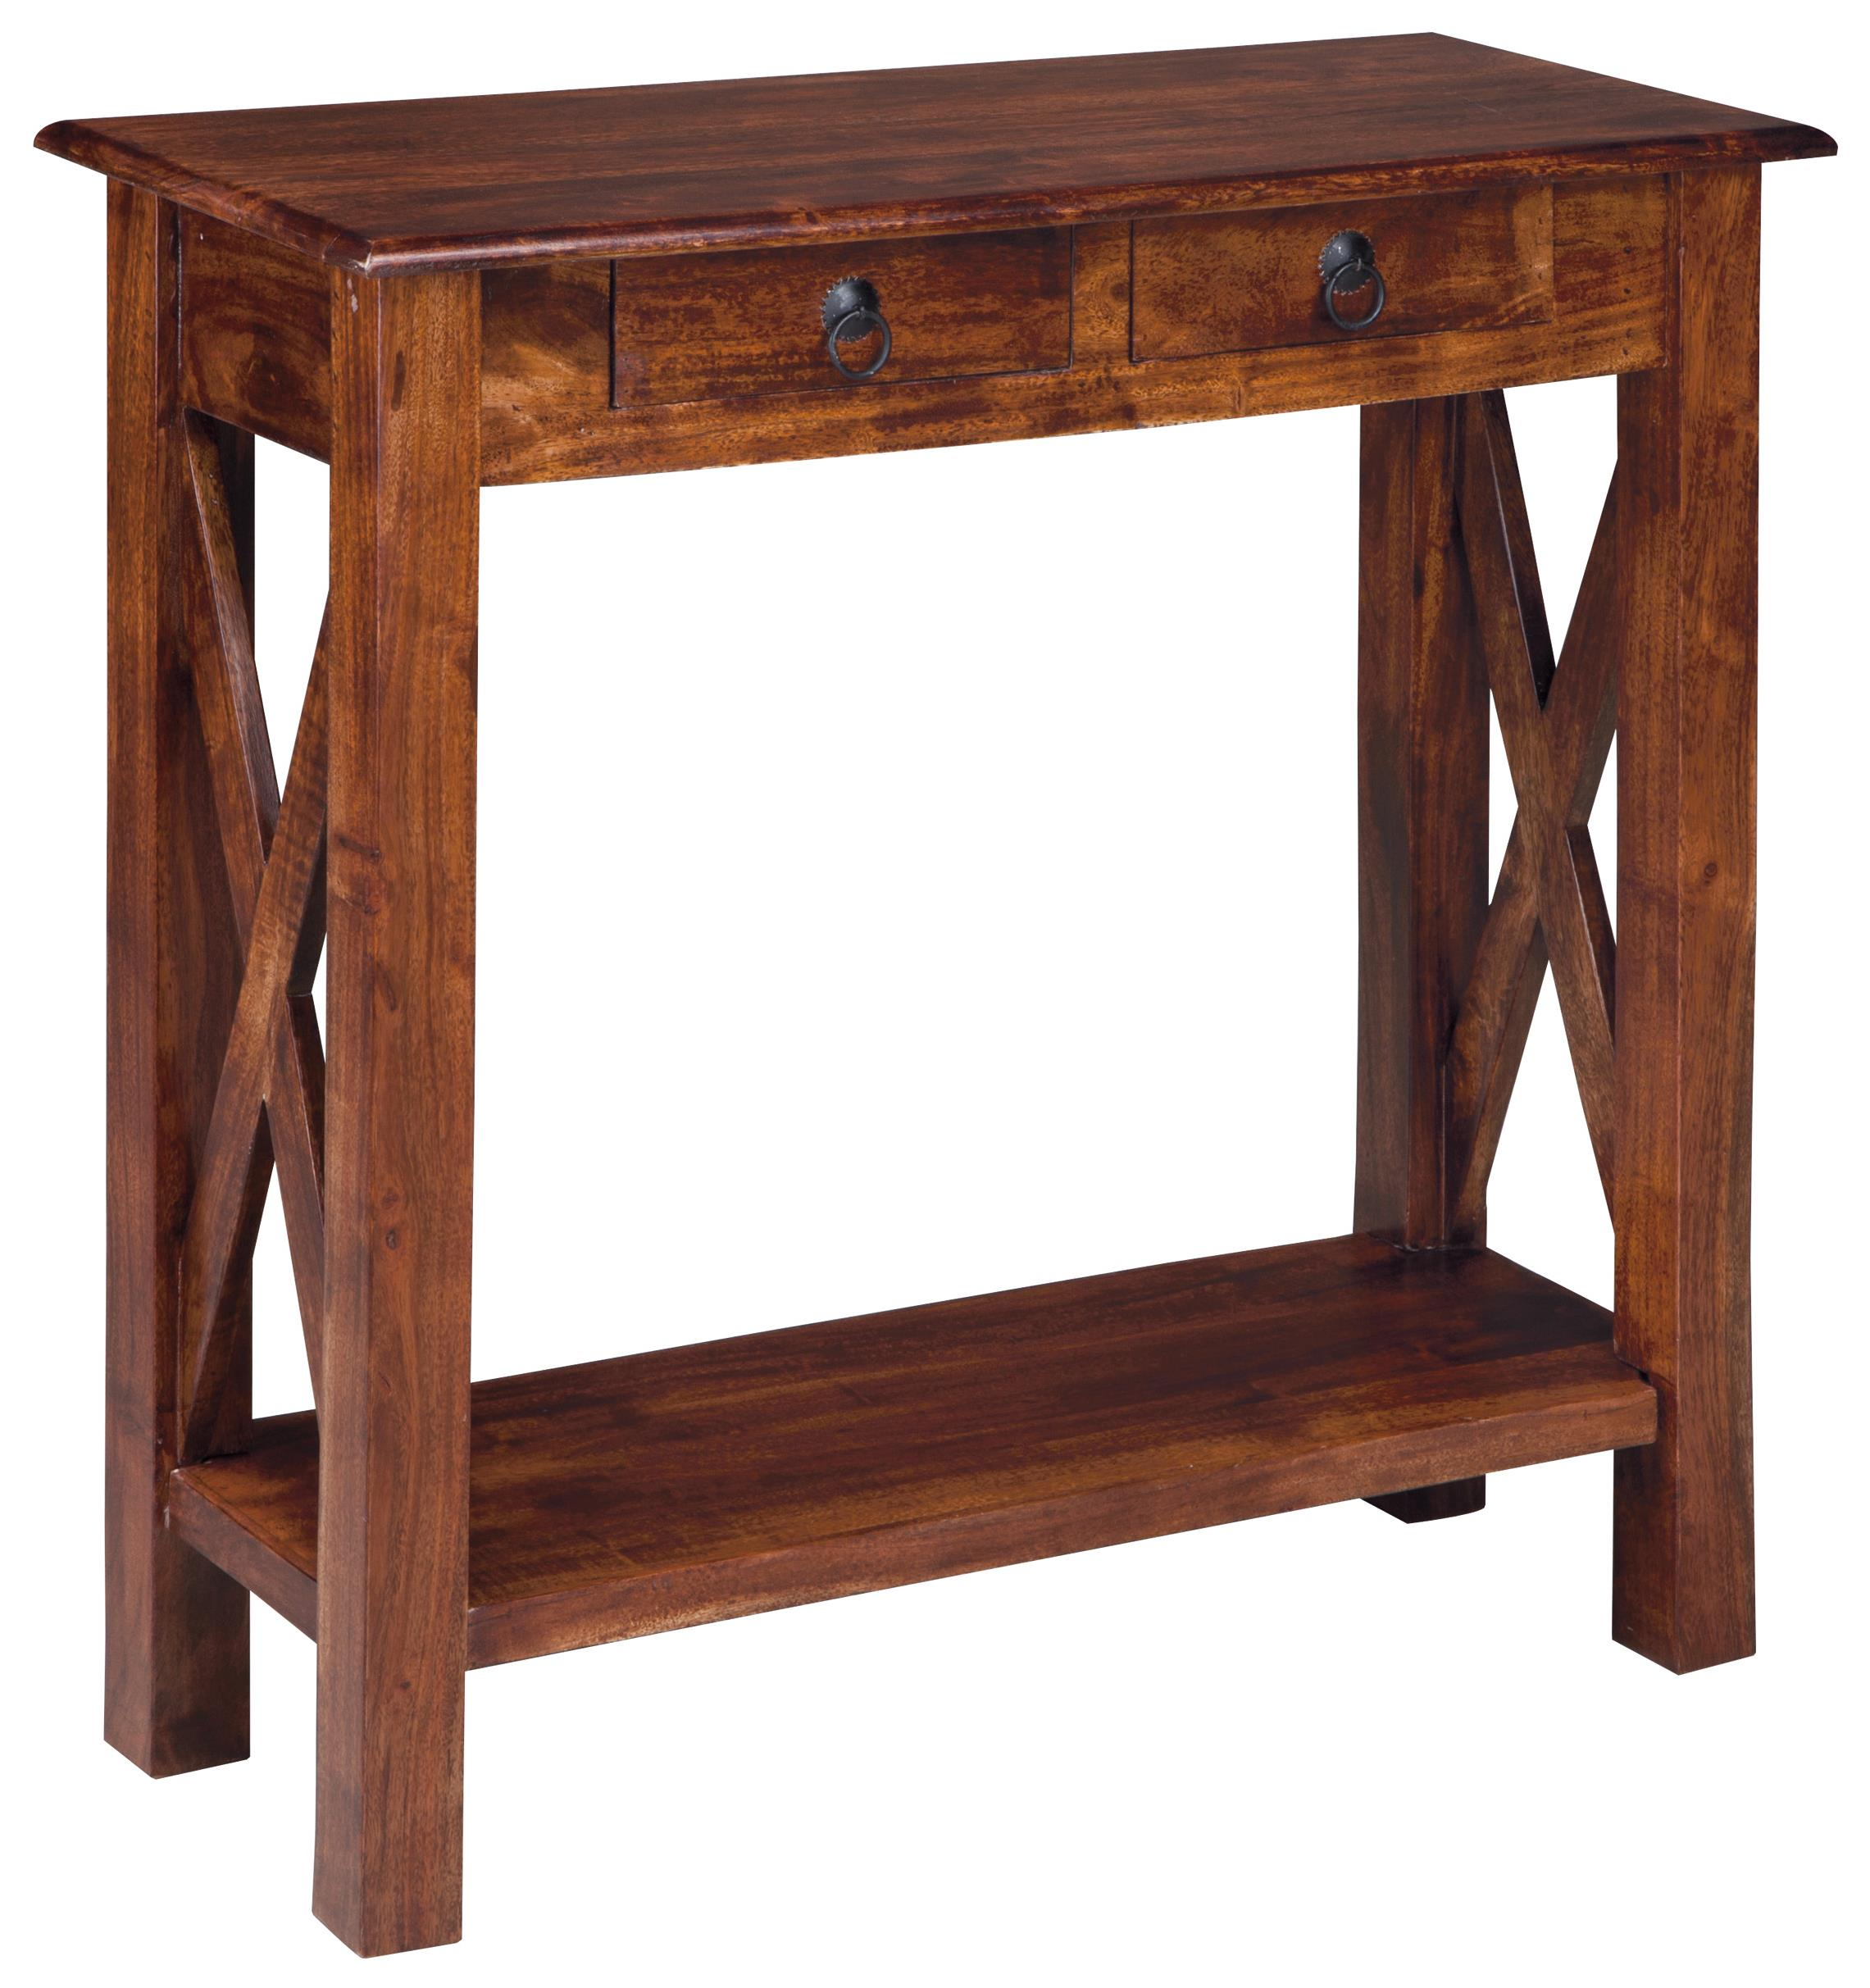 Sofa Table Chair Signature Design By Ashley Abbonto T800 114 Mango Wood